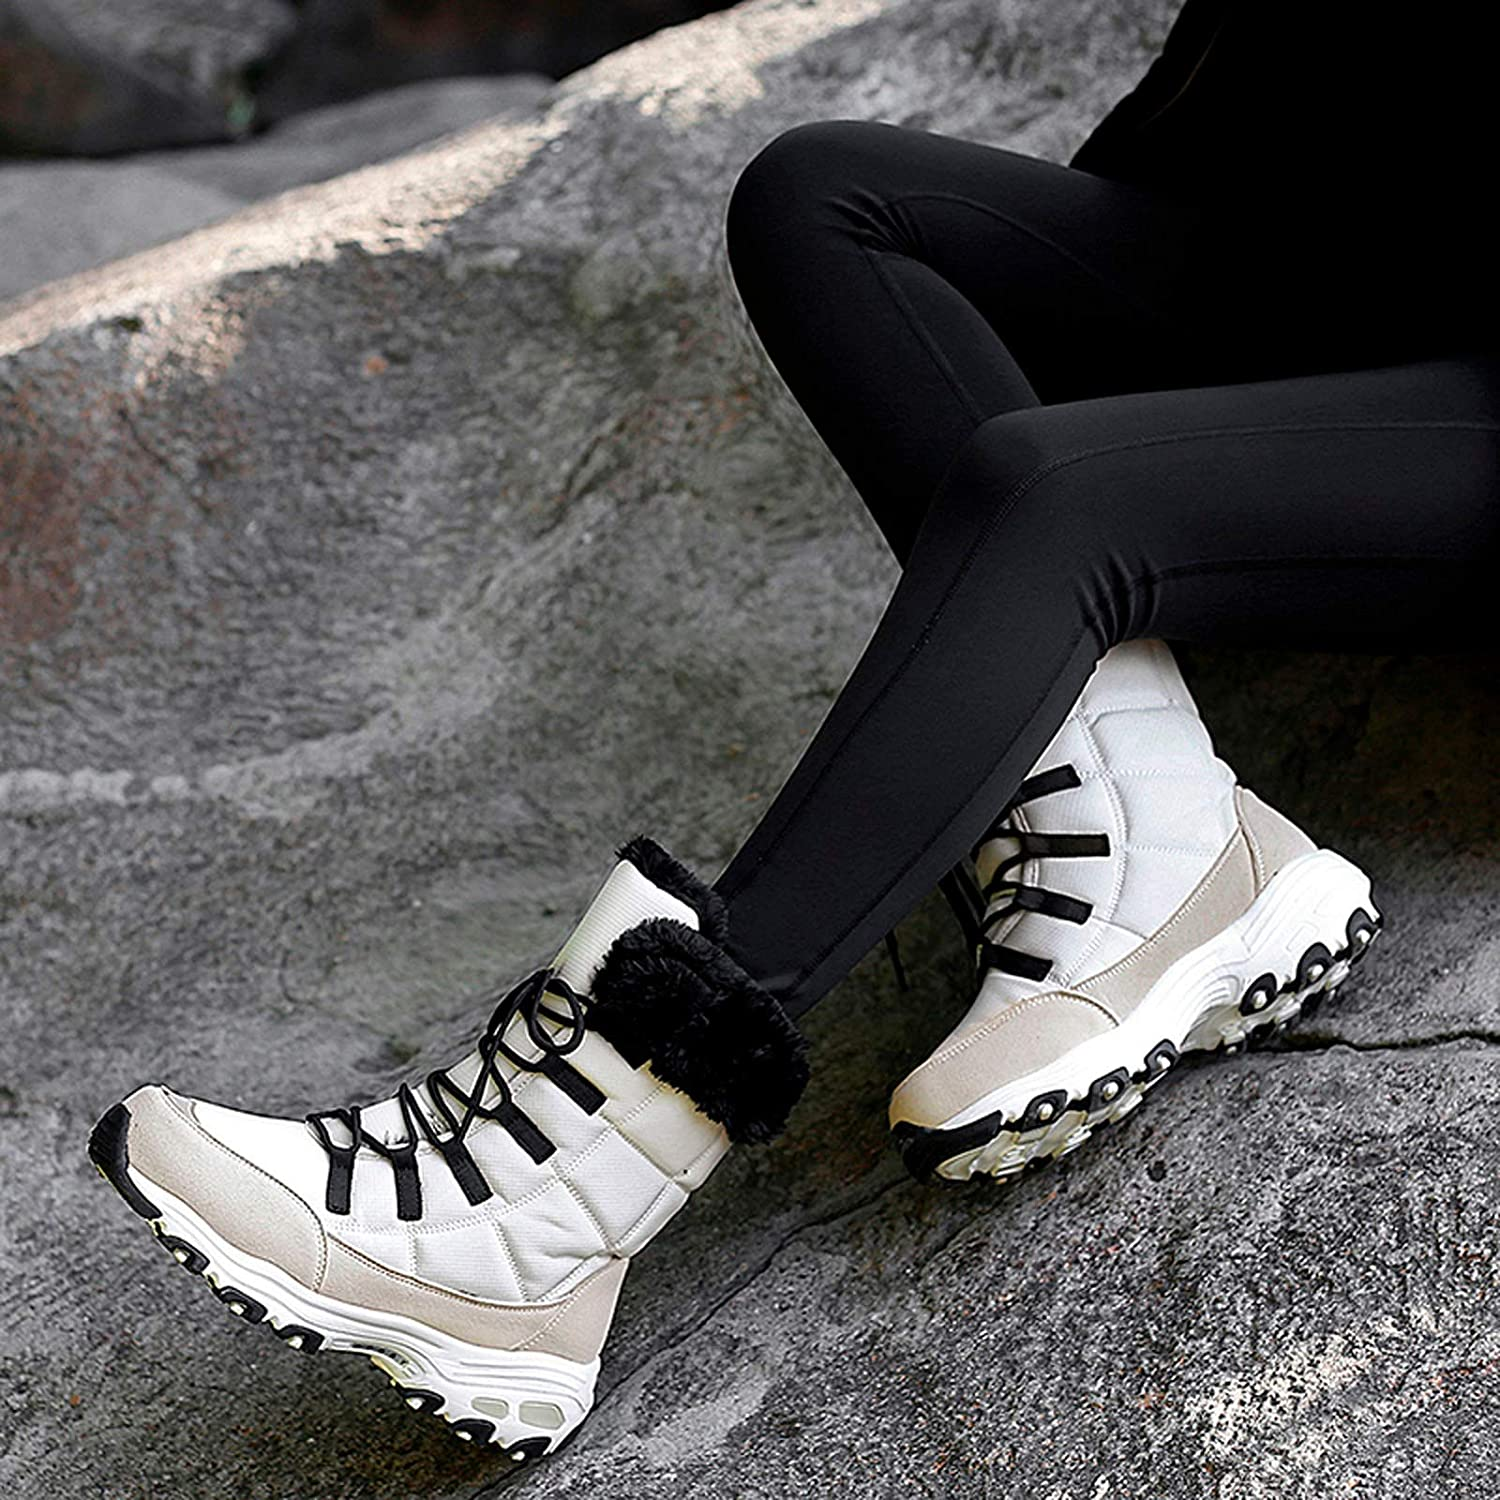 Appoi Women Mid-Calf Boots Faux Fur Lace Up Winter Snow Boot Outdoor Non-Slip Sneakers Comfortable Flats Shoes for Teen Girls